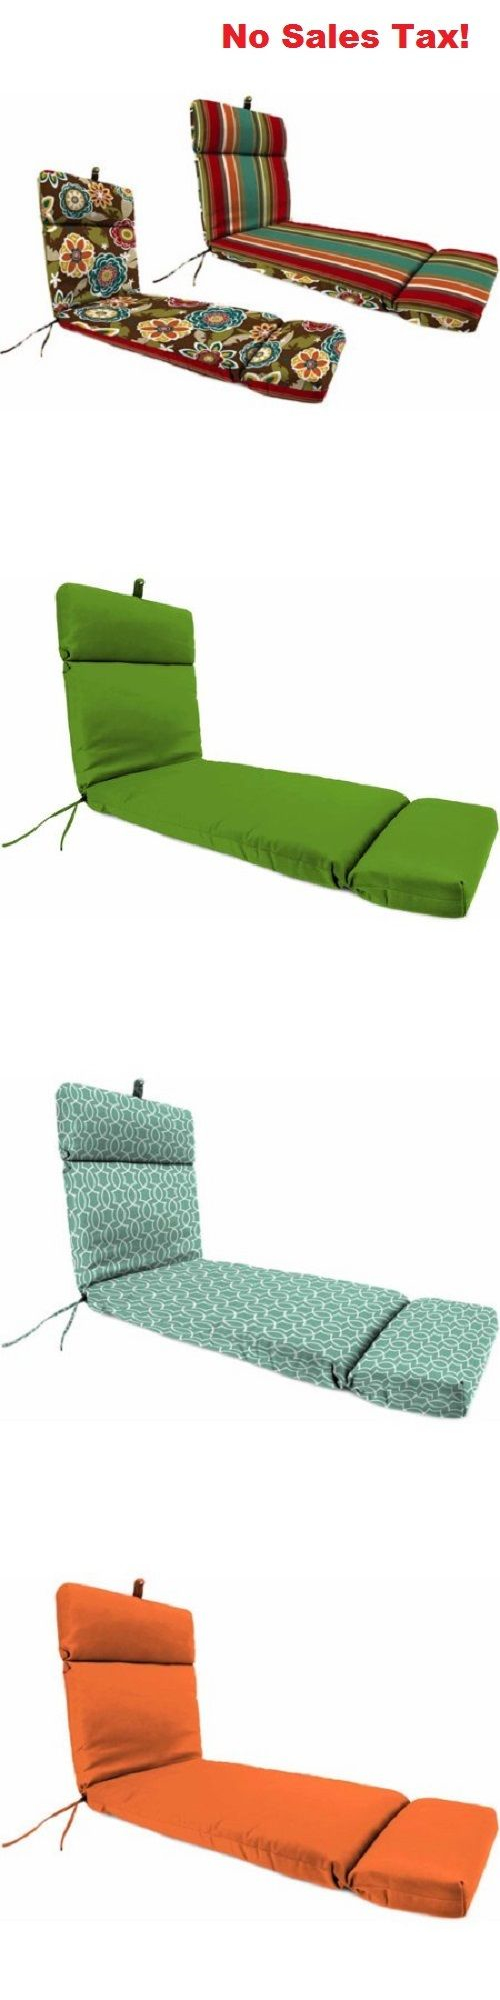 Chaise cushions  sc 1 st  Pinterest : chaise pads - Sectionals, Sofas & Couches